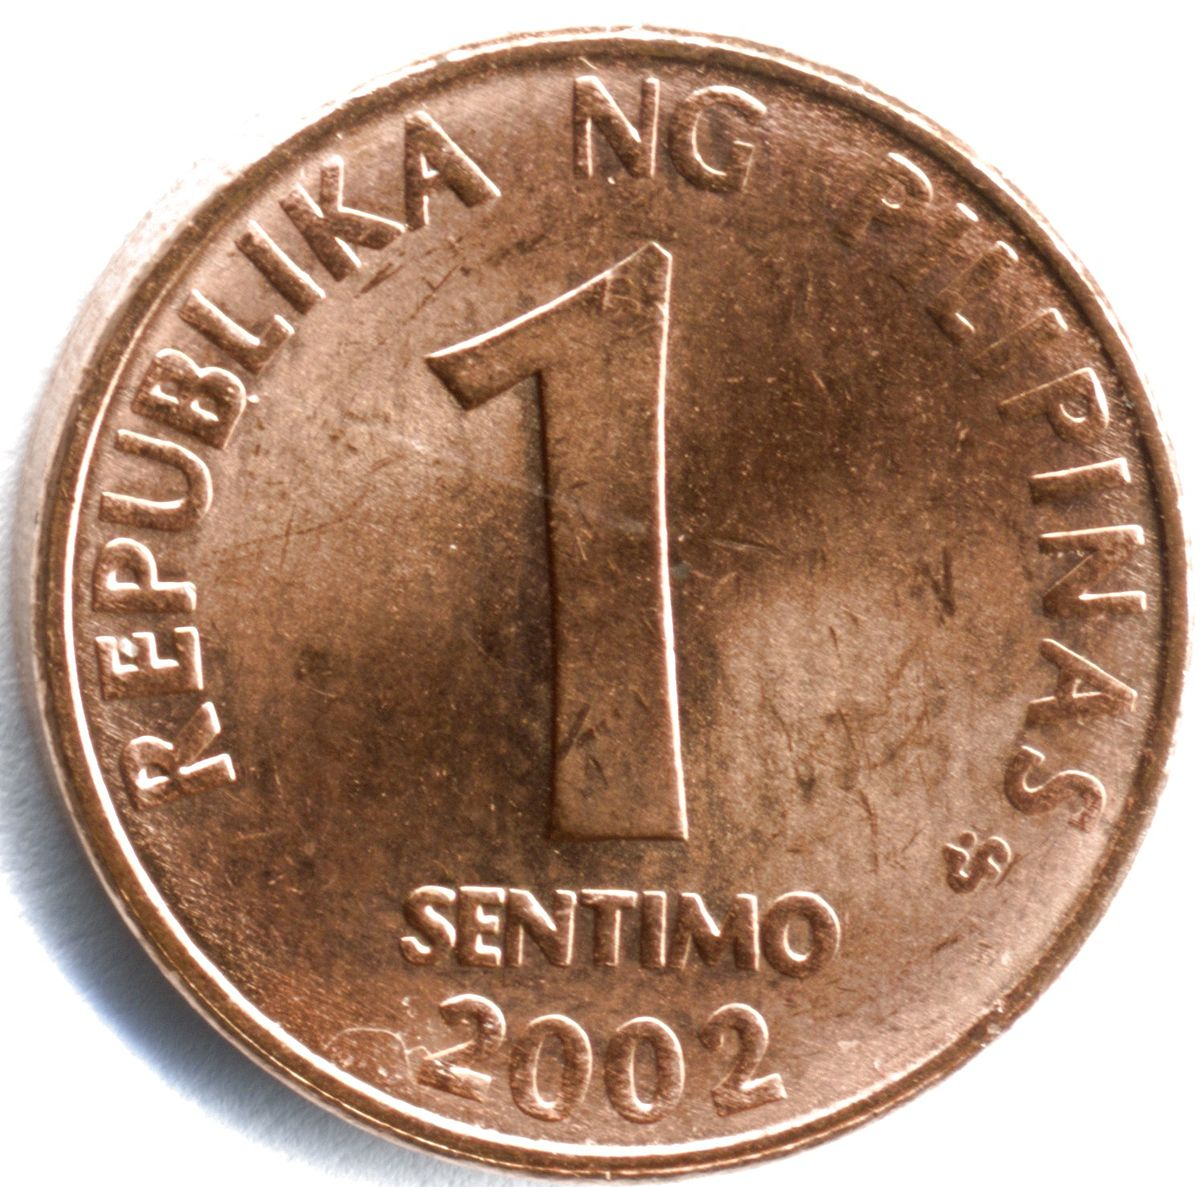 Coin Ph: Philippine One Centavo Coin